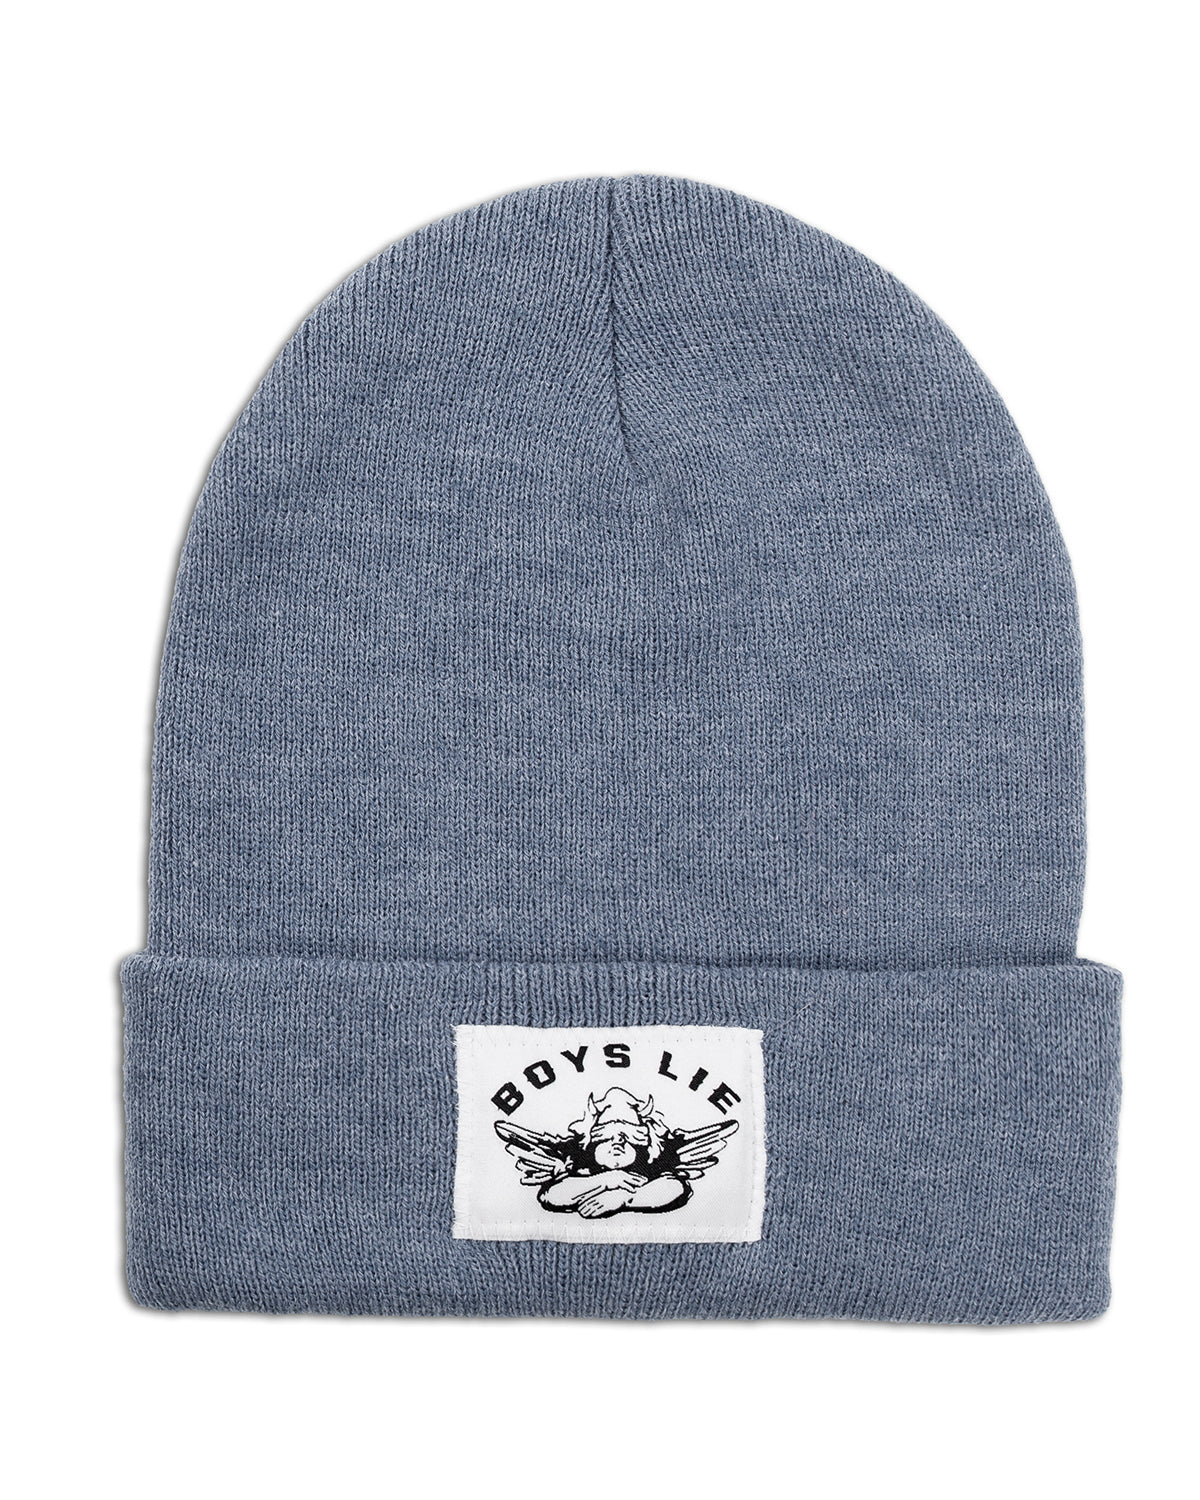 BOYS LIE HEATHER NAVY BEANIE